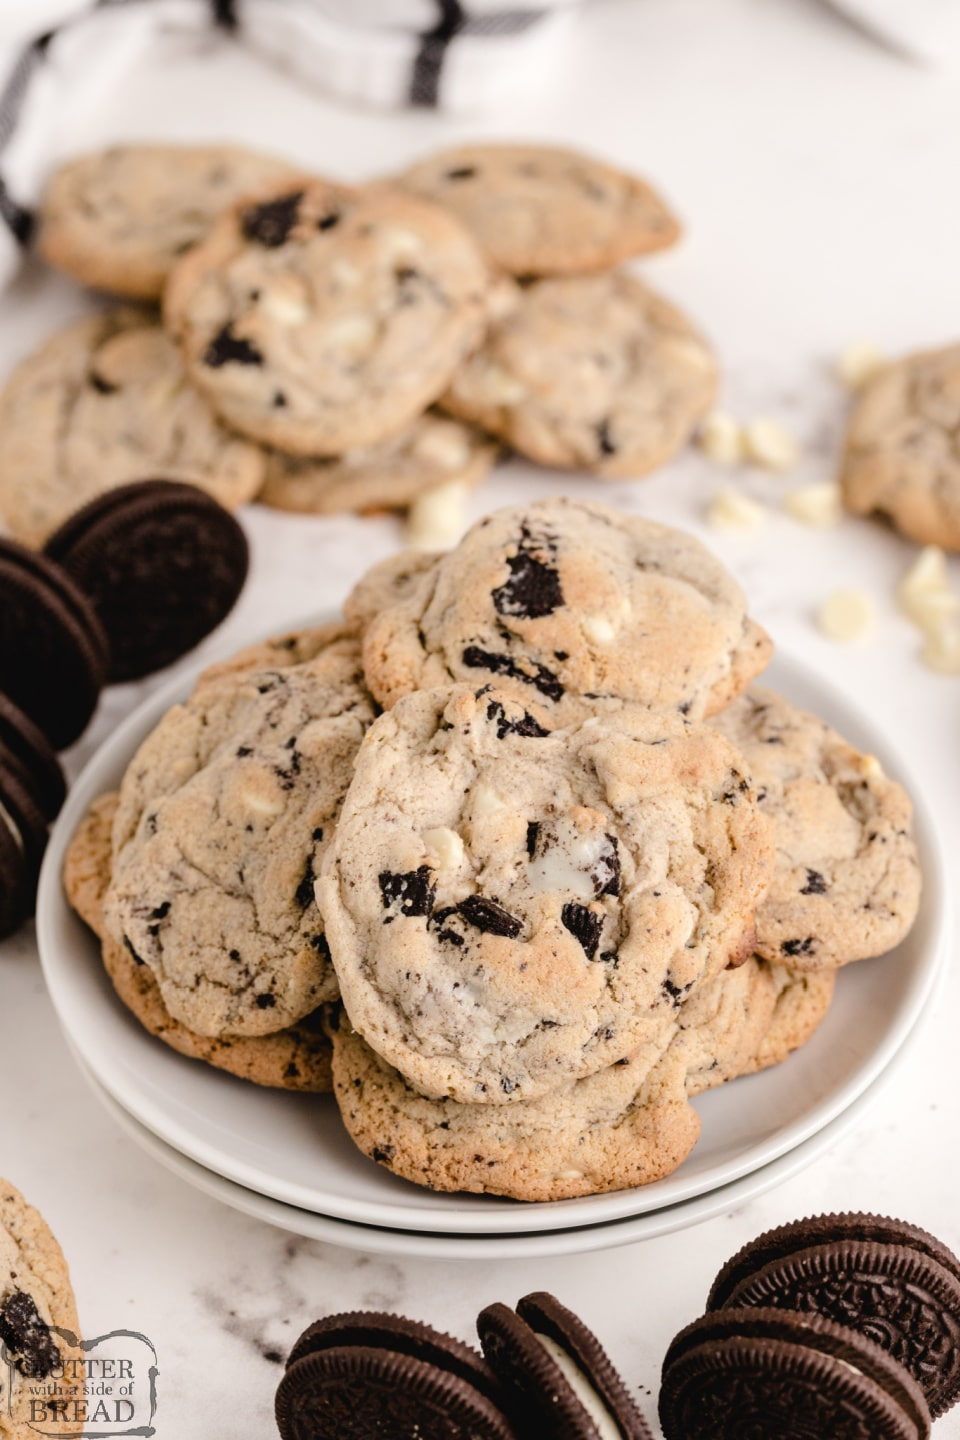 Cookies & Cream Cookies are made with Oreo pudding mix, white chocolate chips and chunks of Oreo cookies. This delicious cookie recipe yields perfectly soft and chewy cookies every time!